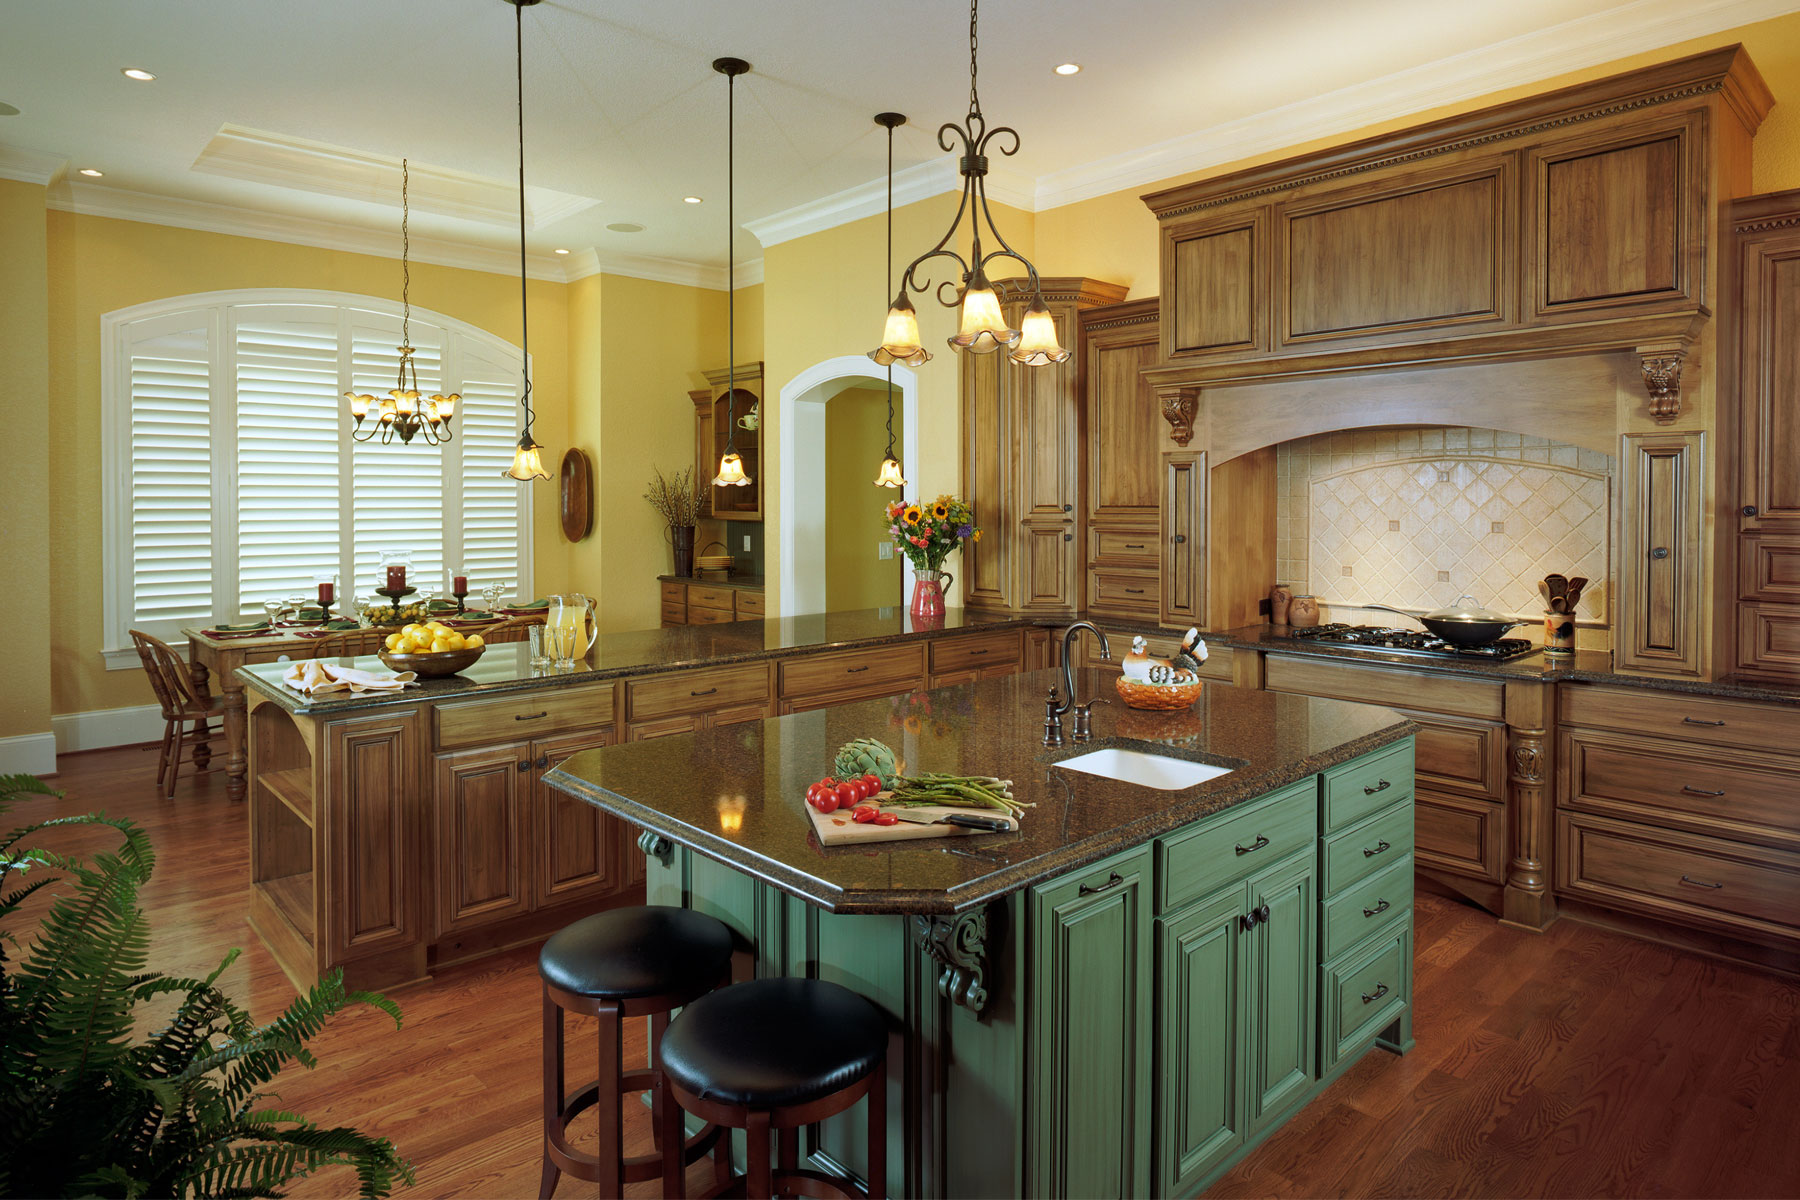 large-eatin-kitchen-wood-cabinets-traditional